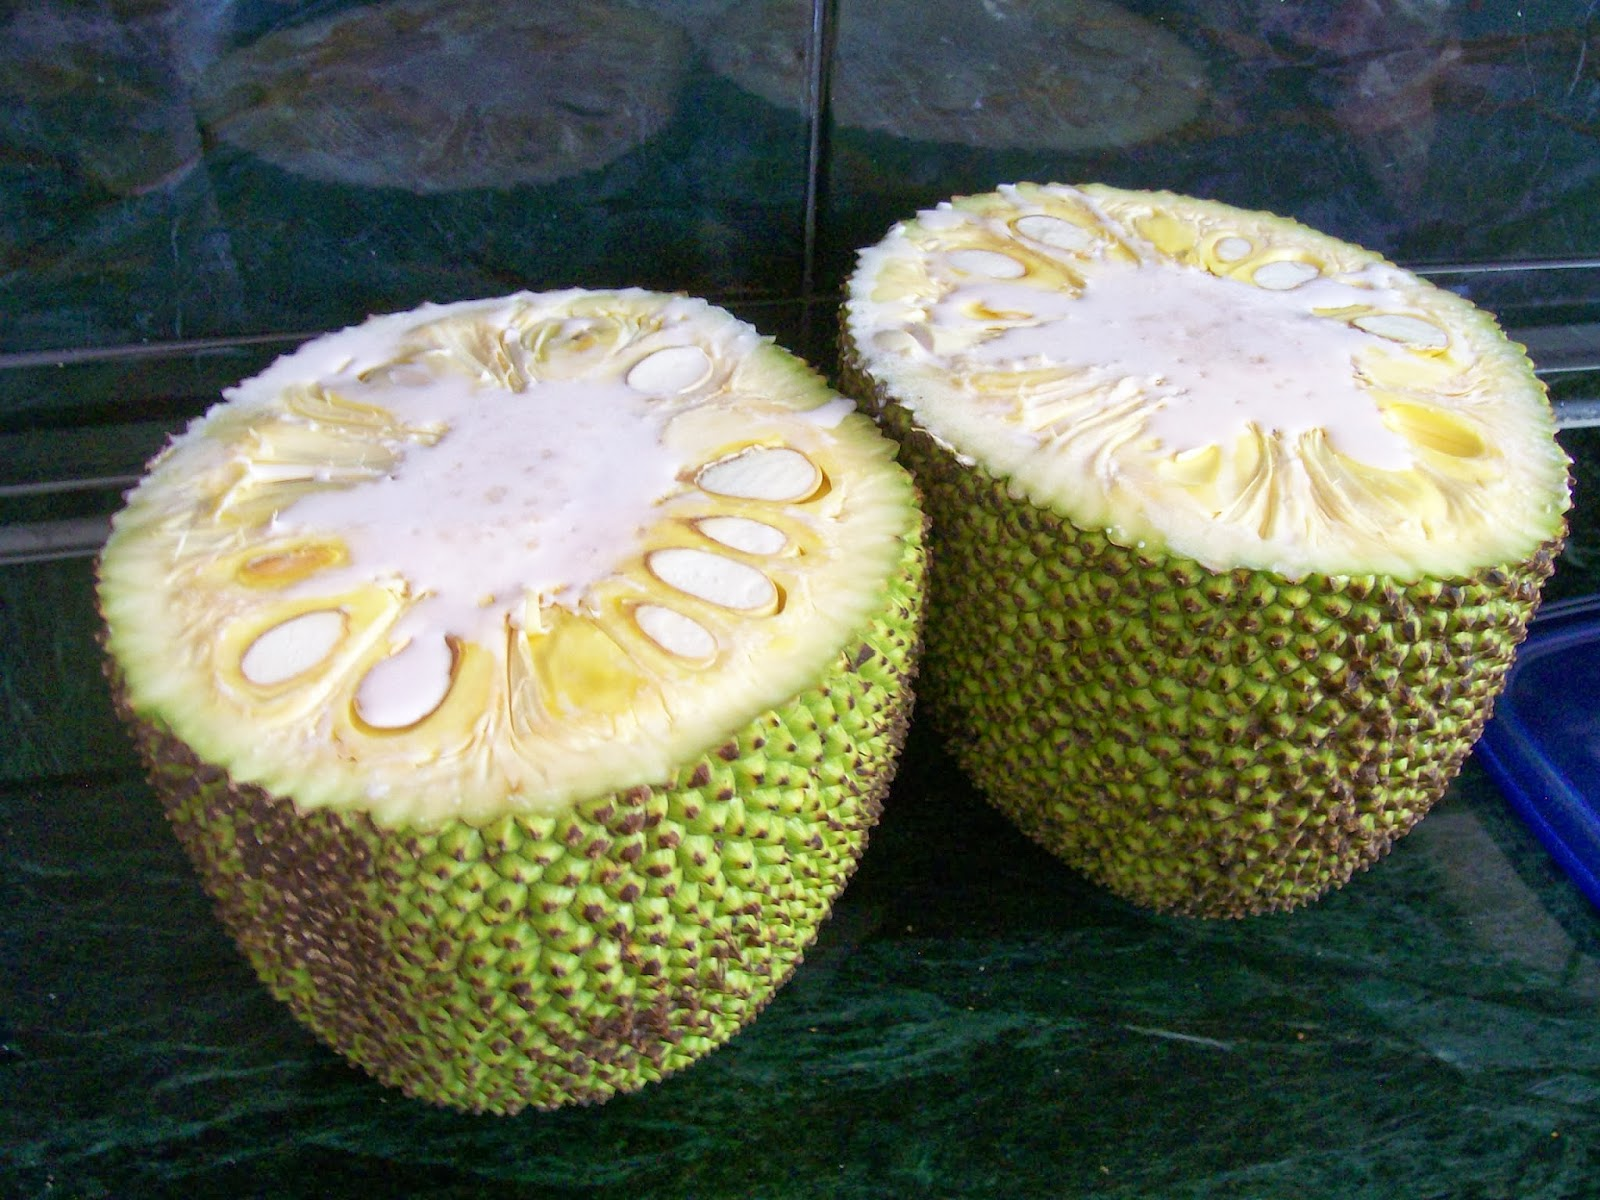 how to cut an ugli fruit